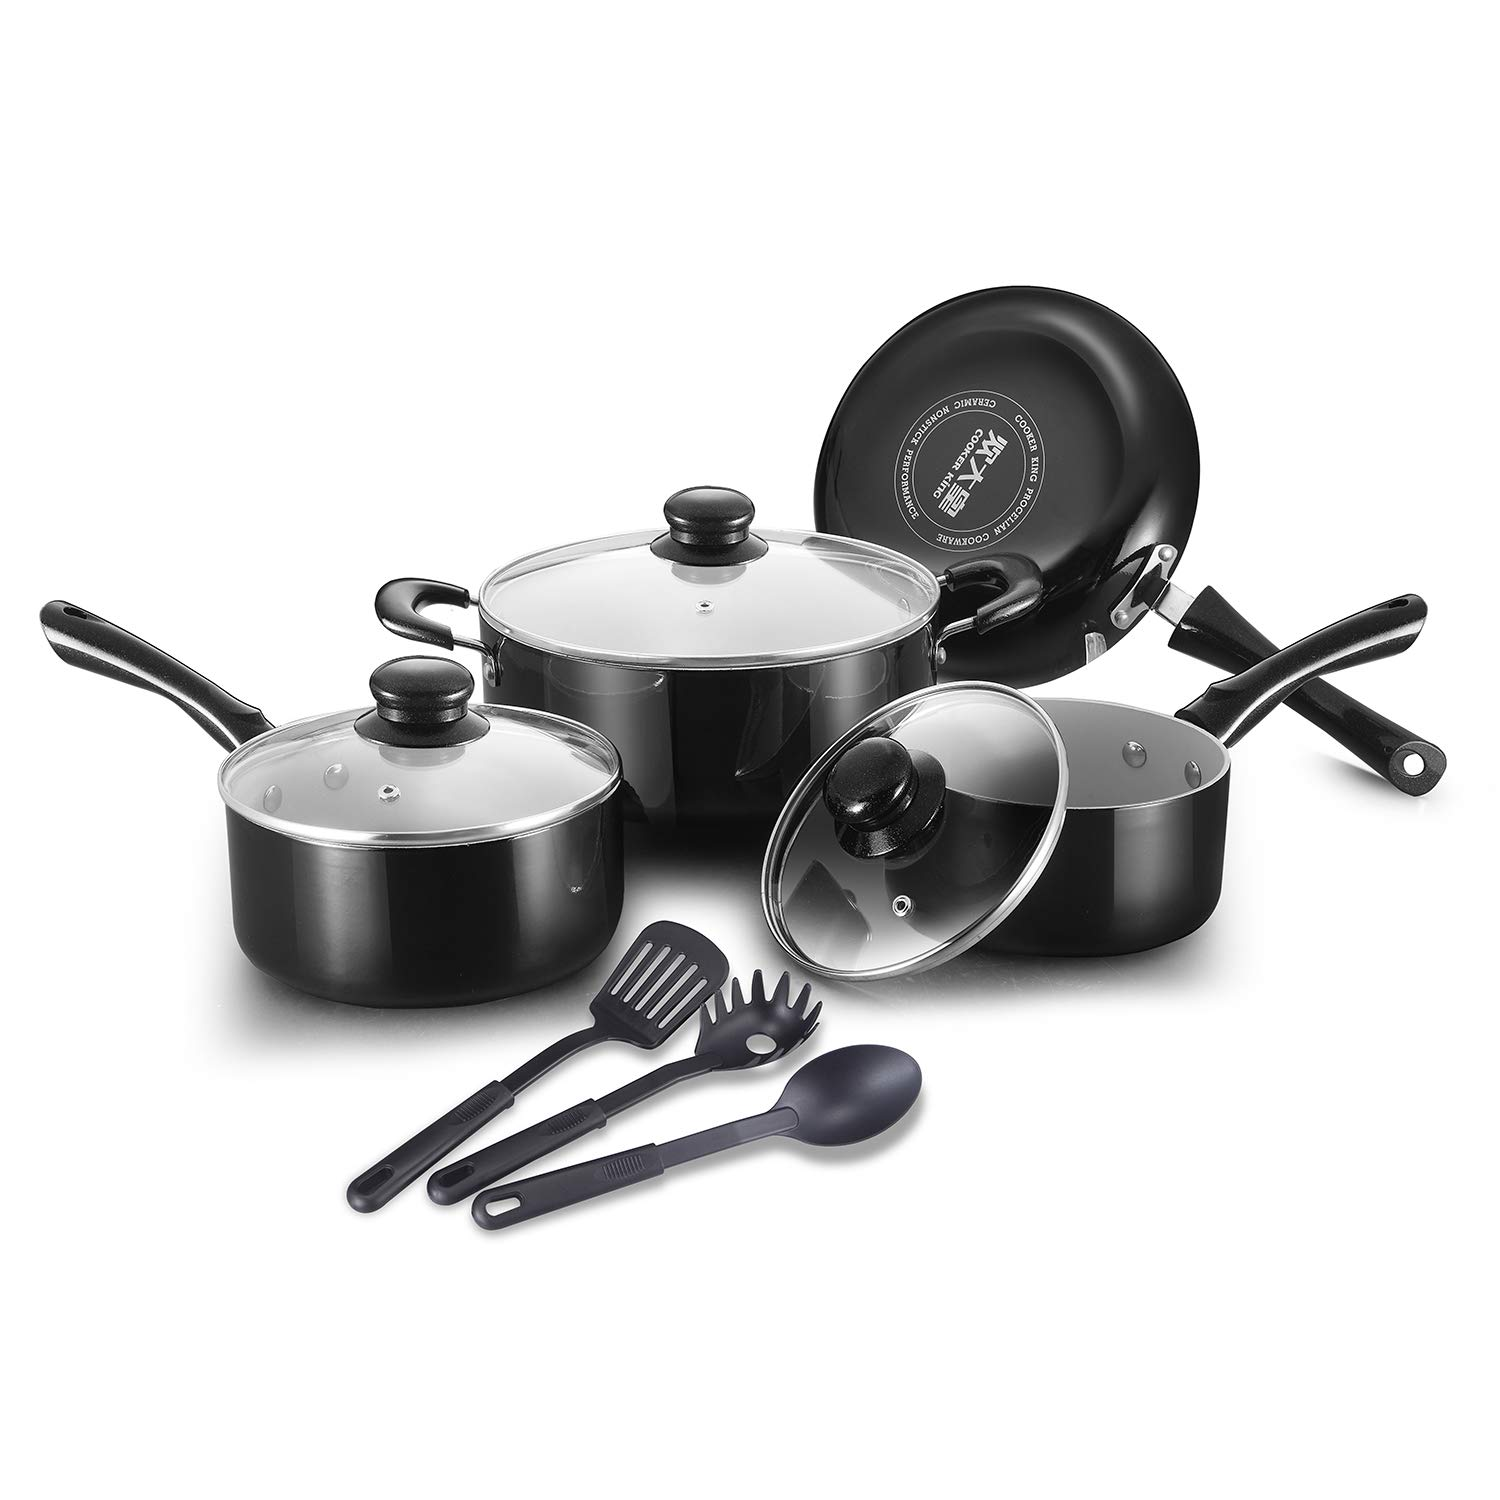 COOKER KING Ceramic Nonstick Cookware Set, Scratch Resistant, Toxin-Free, Dishwasher Safe, Oven Safe, Healthy Ceramic Pots and Pans Set, 10-Piece